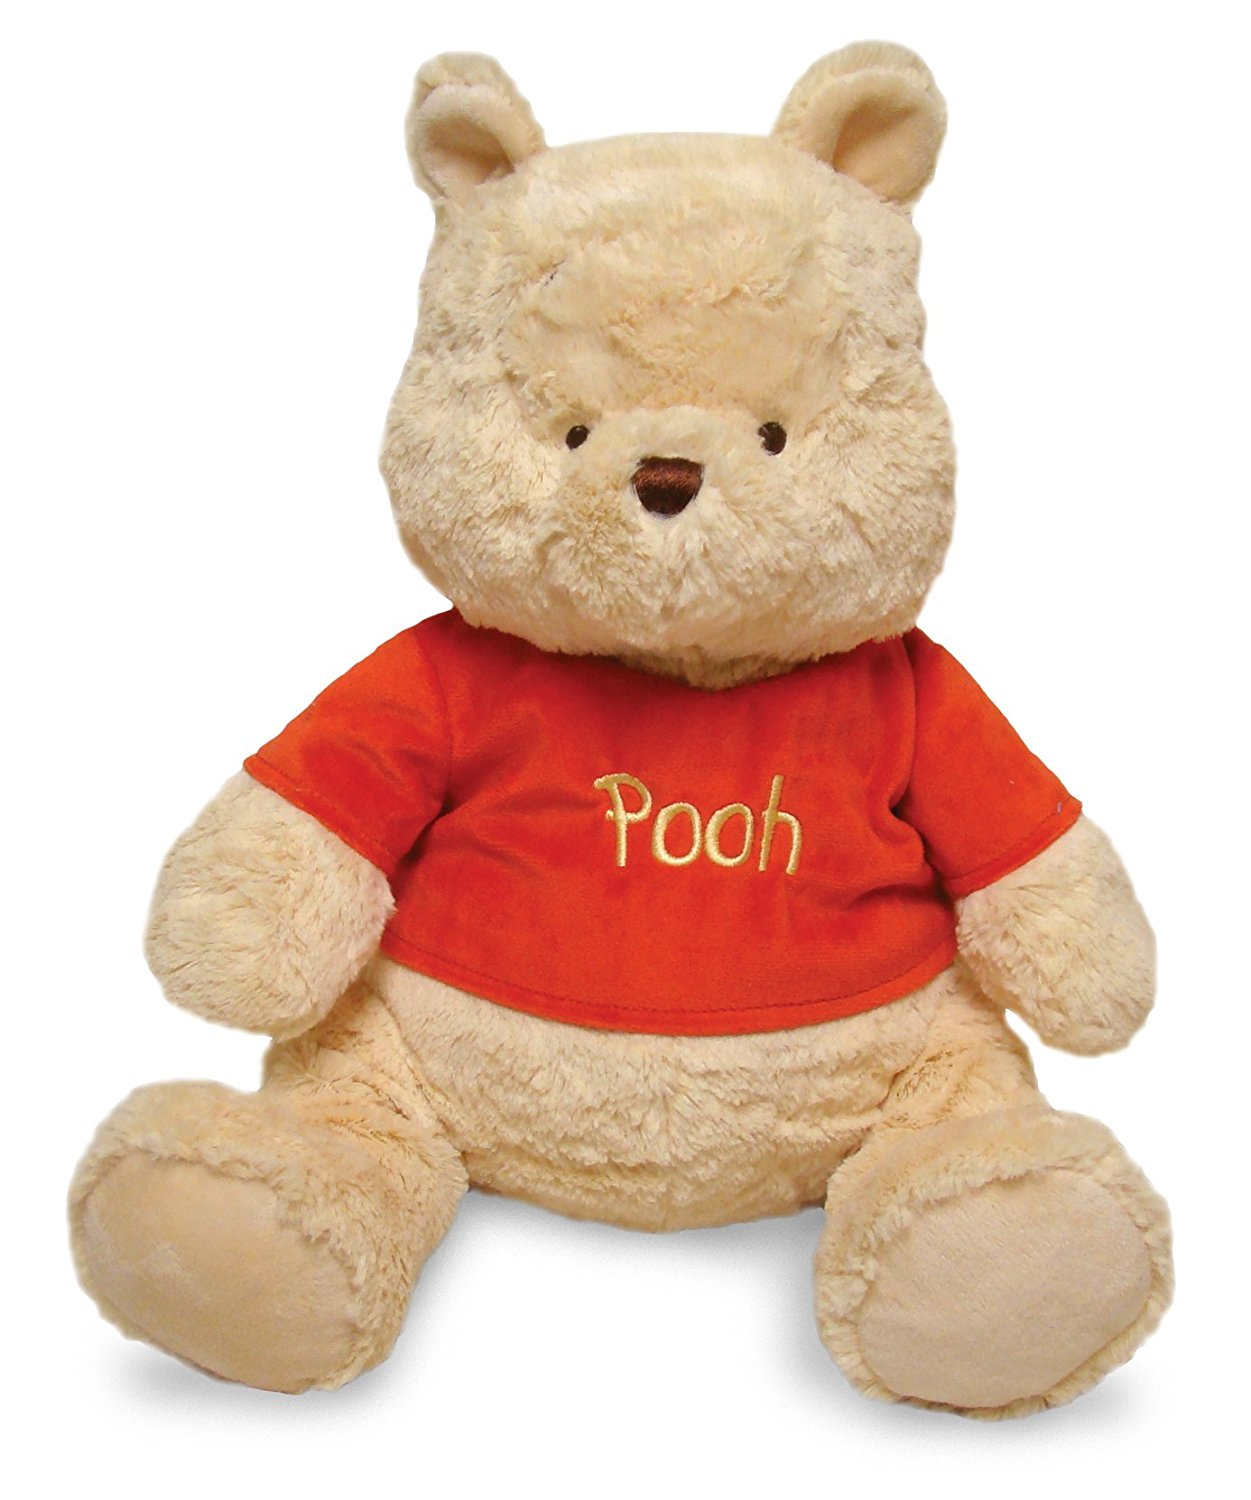 9f3142f12a6d Get Quotations · Disney Baby  Winnie the Pooh Large Plush